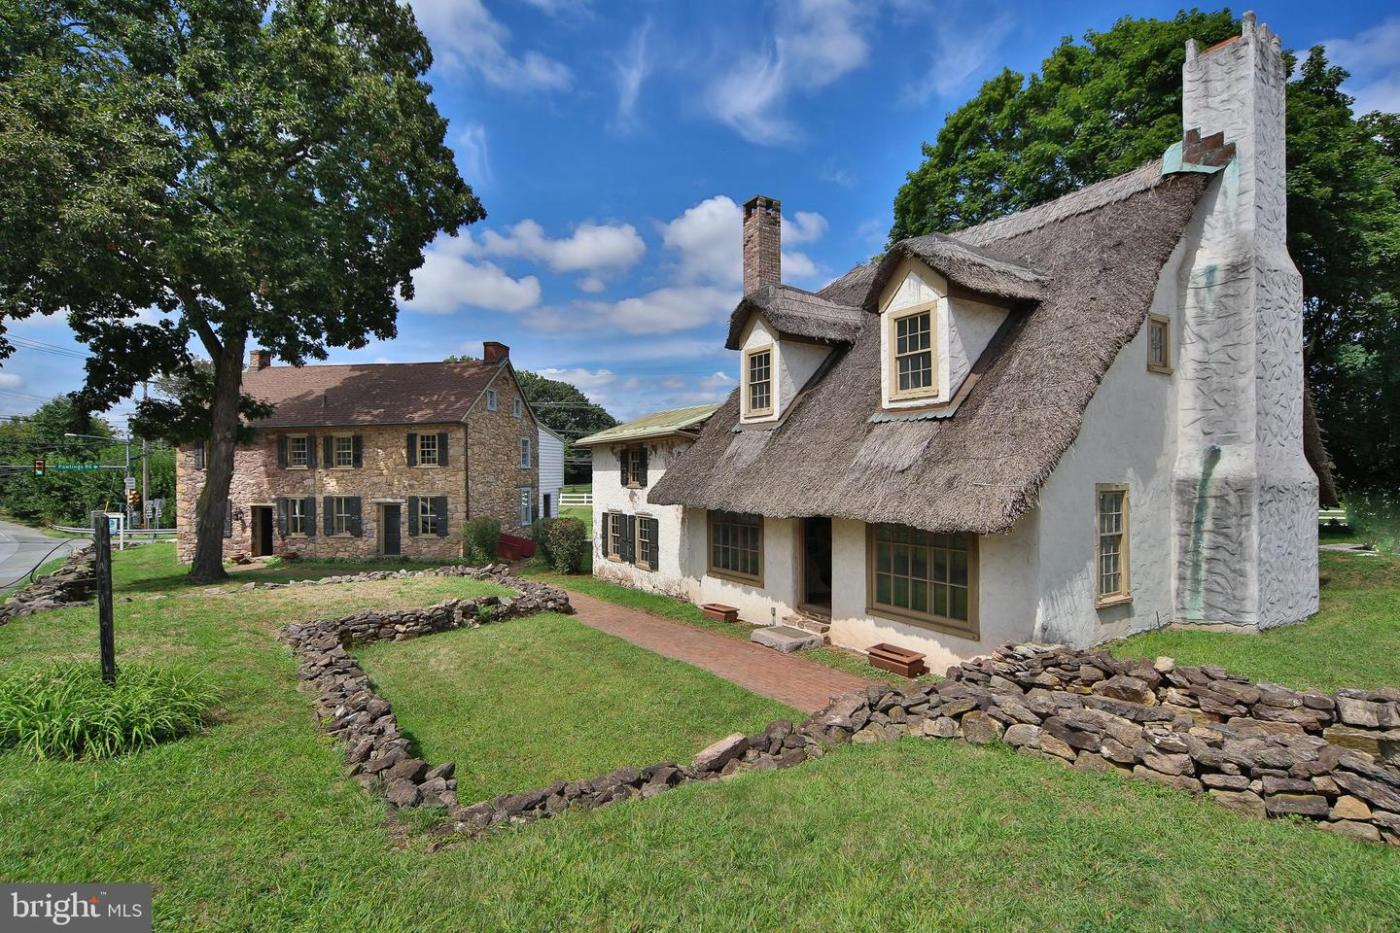 1700's Colonial homes